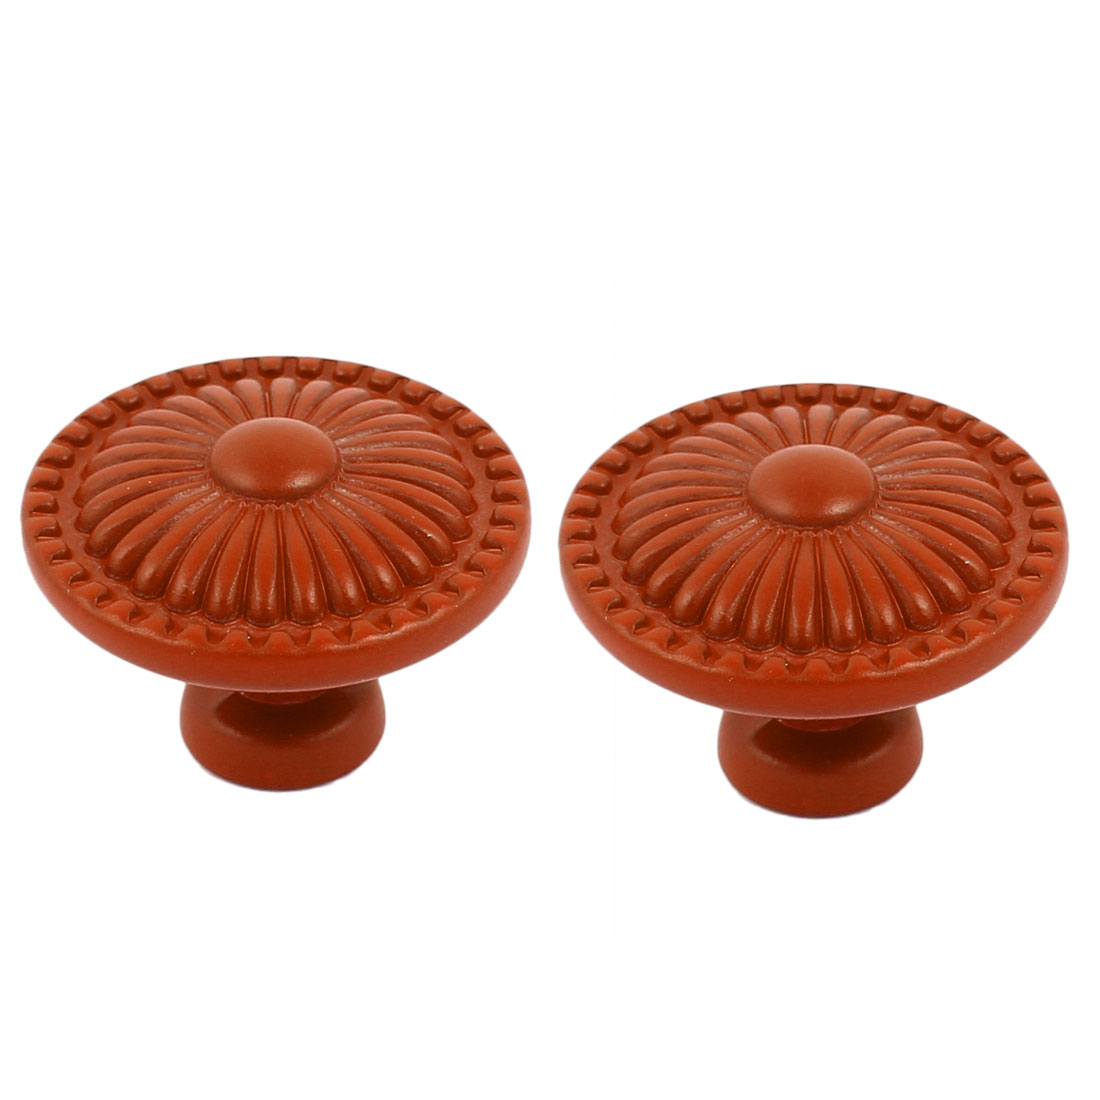 Cabinet Wardrobe Drawer Door Pull Flower Engraved Ceramic Knobs Handle Orange 2pcs